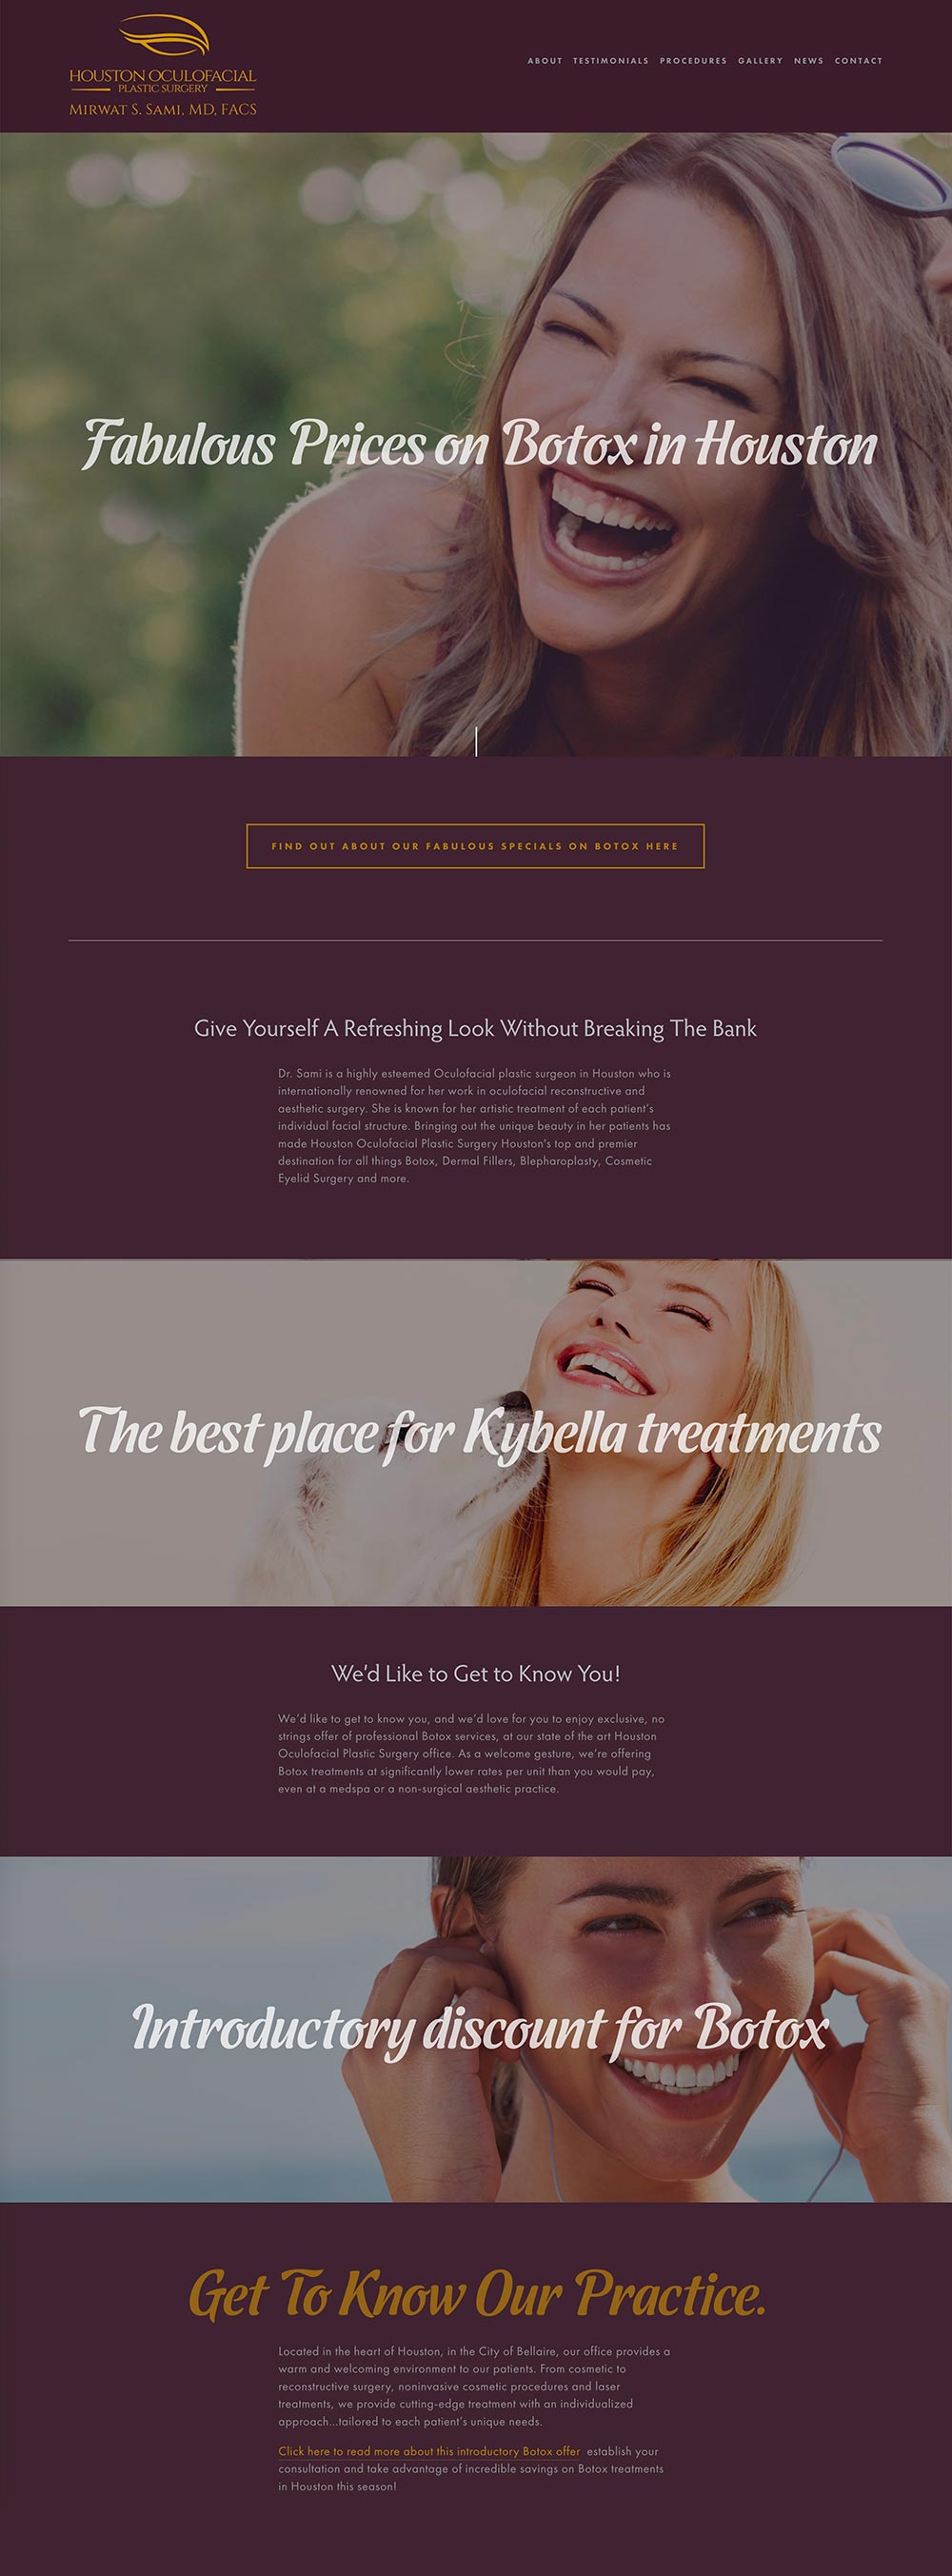 Houston surgeon injectibles website designed by Columbus web design group Sevell.jpg